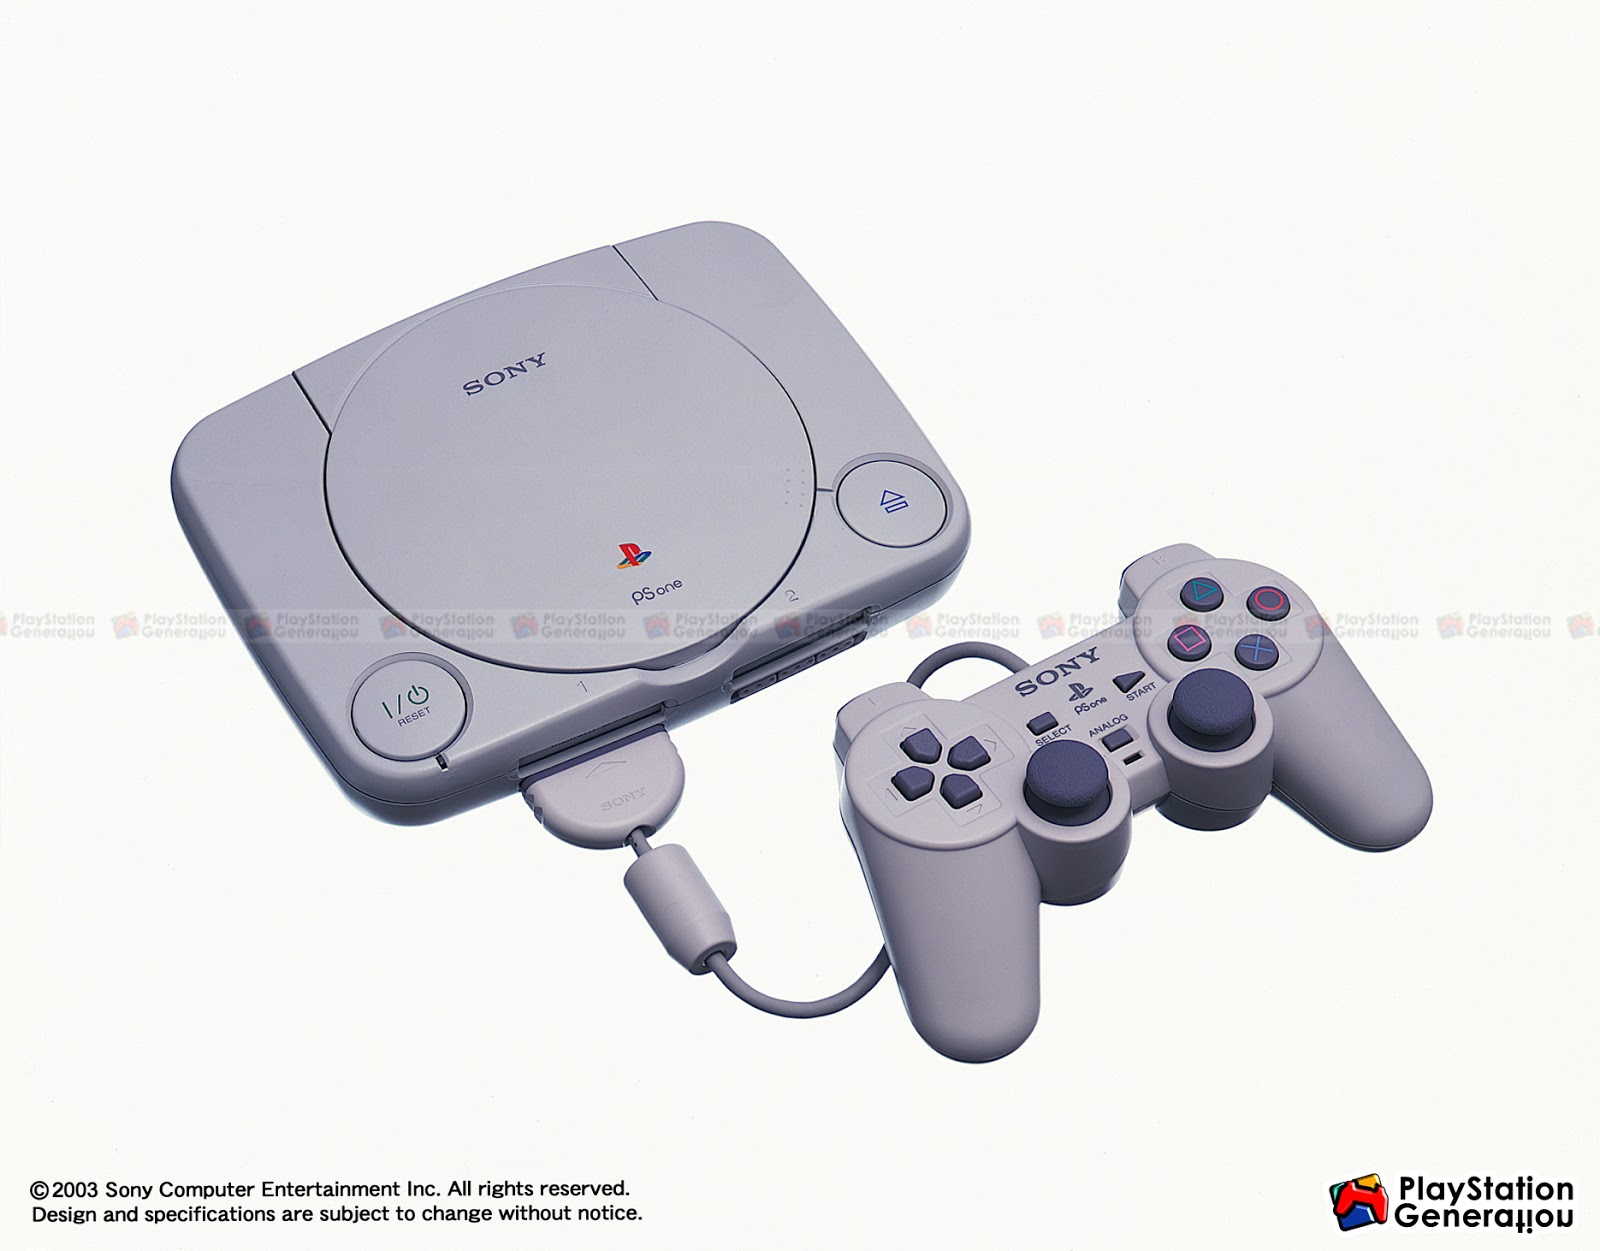 psone scph100 playstation generation